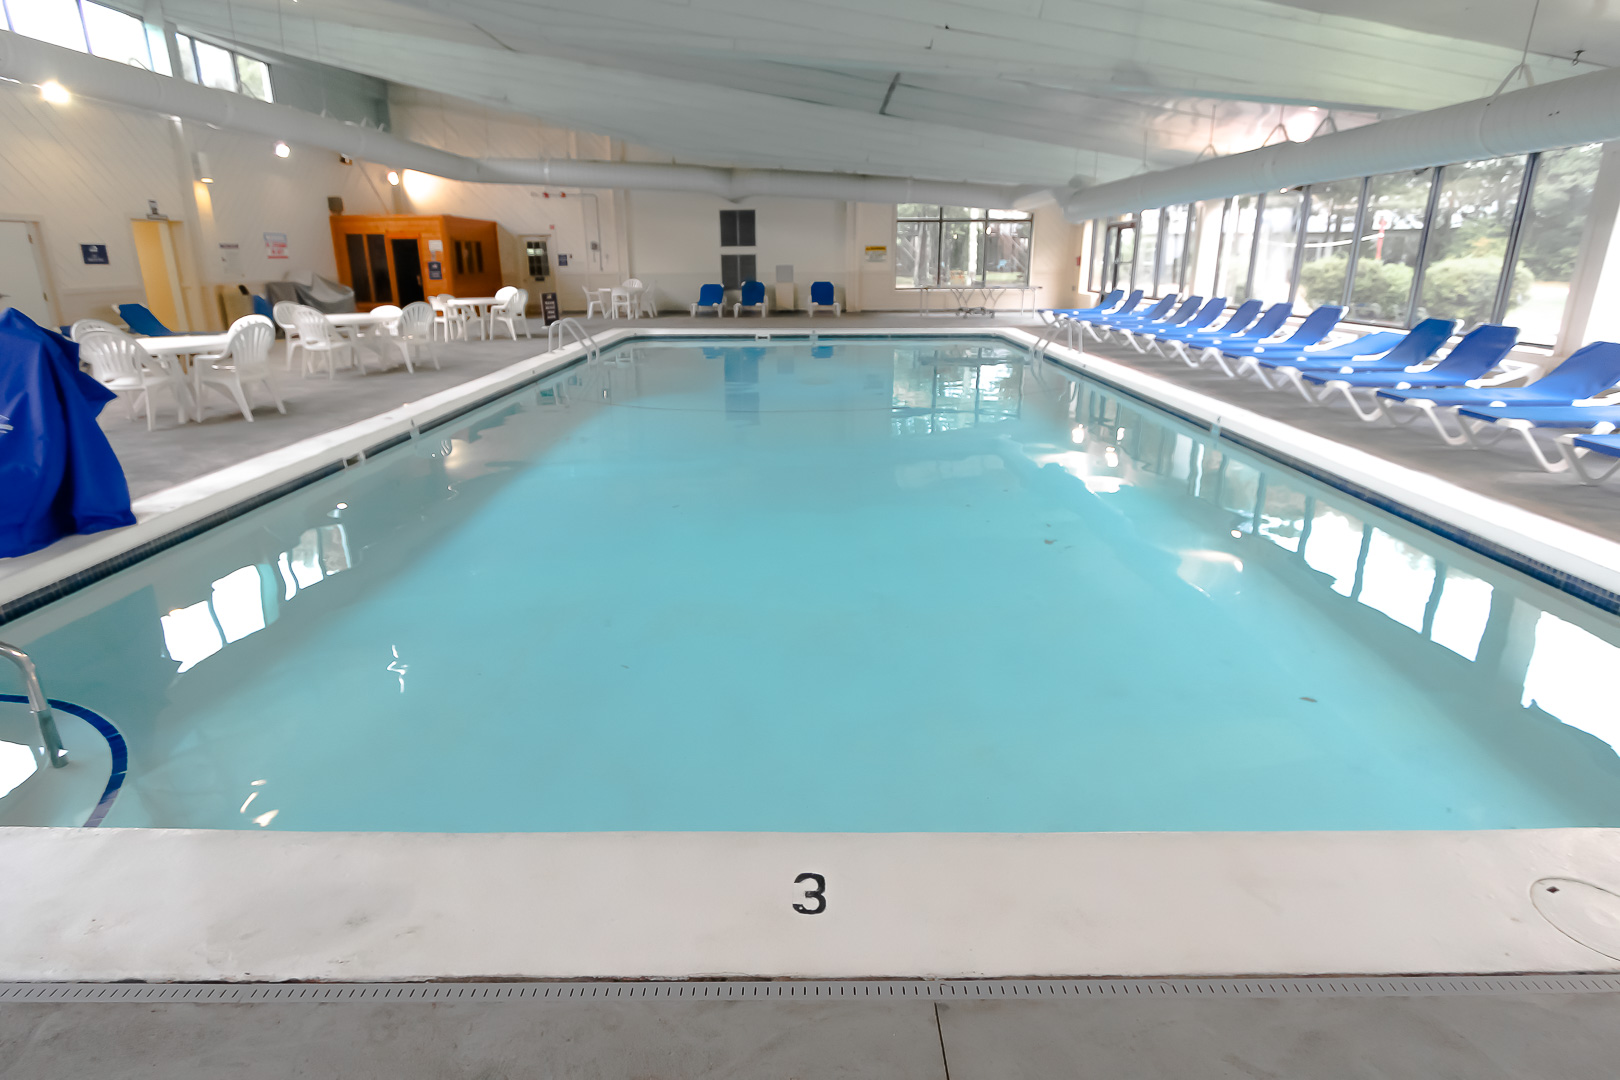 A cozy indoor swimming pool at VRI's Sea Mist Resort in Massachusetts.